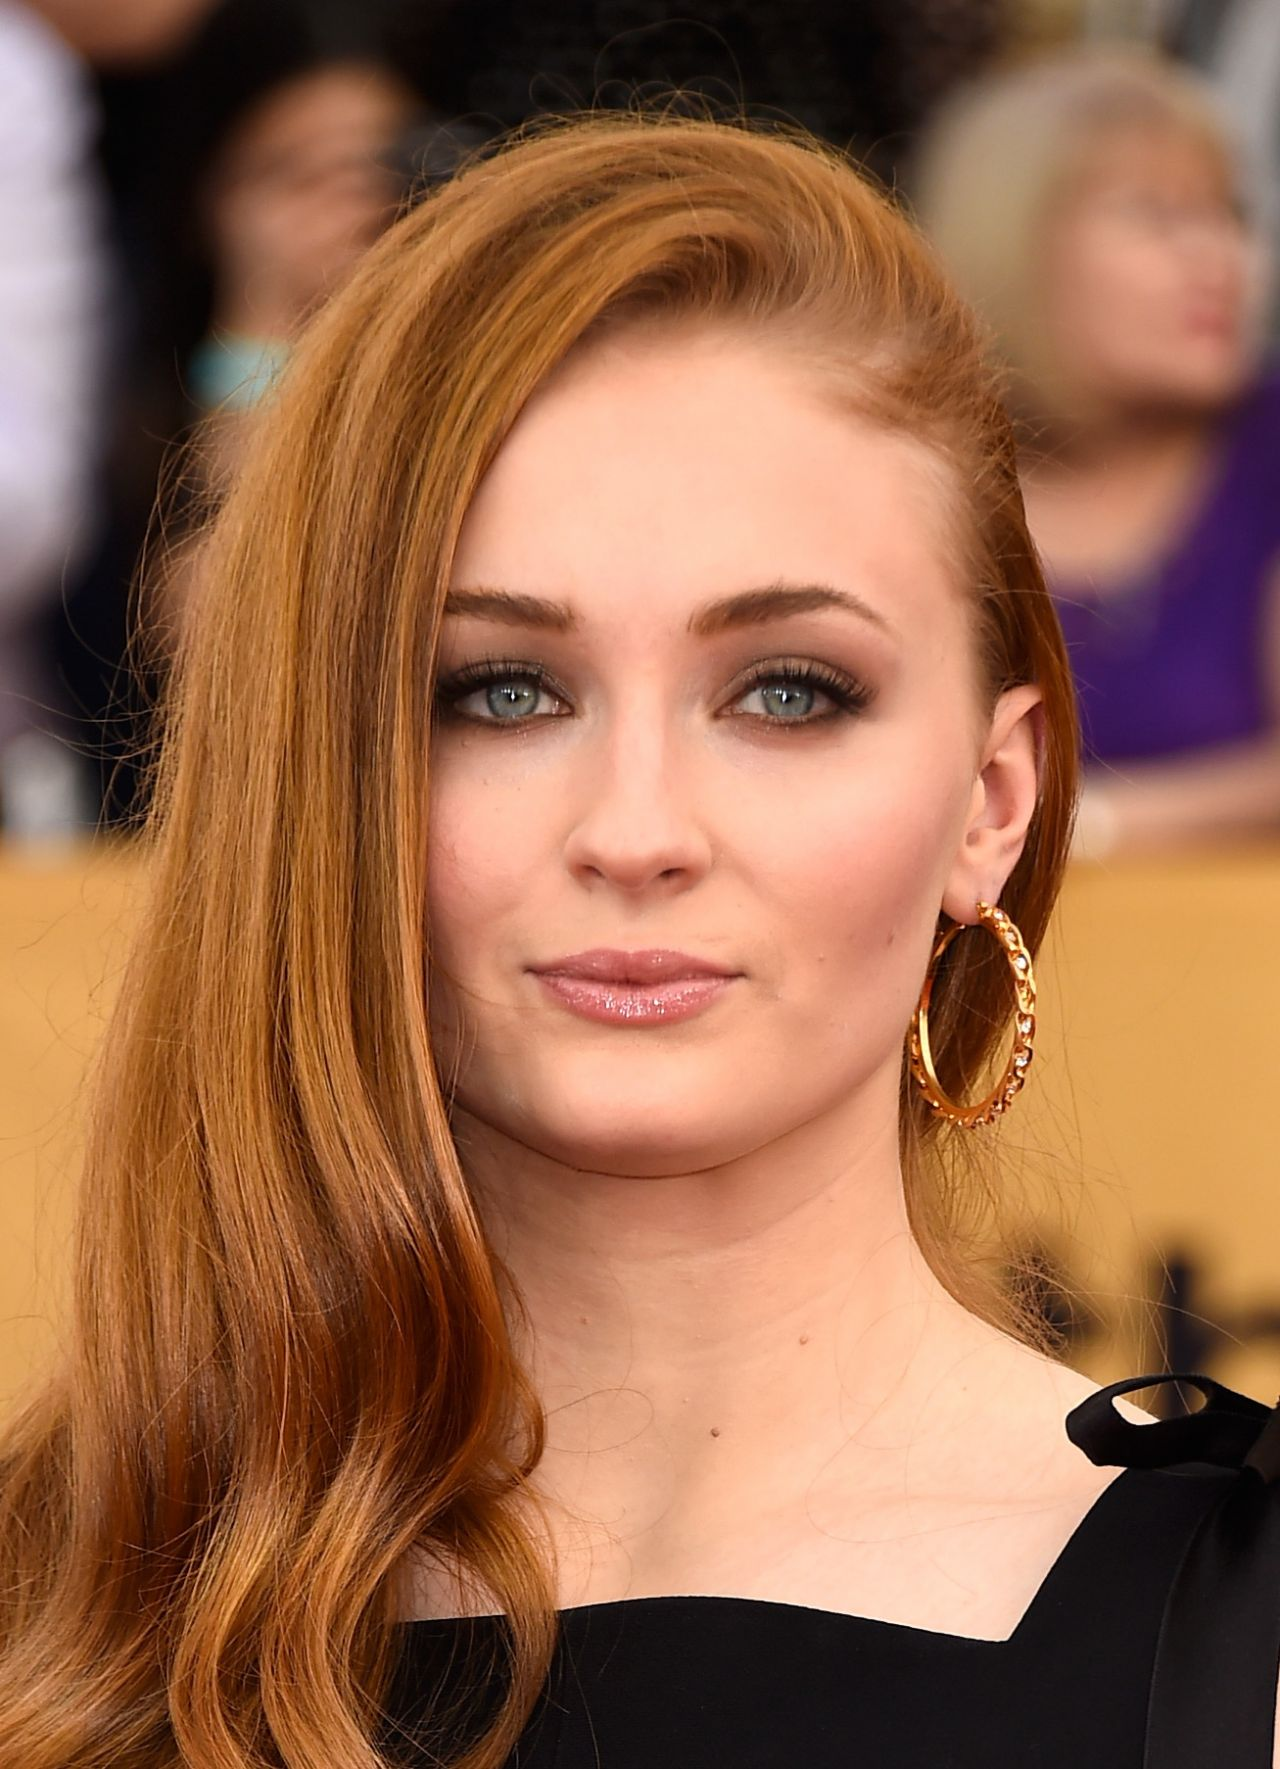 Leaked Sophie Turner and Maisie Williams  nudes (65 fotos), Snapchat, legs